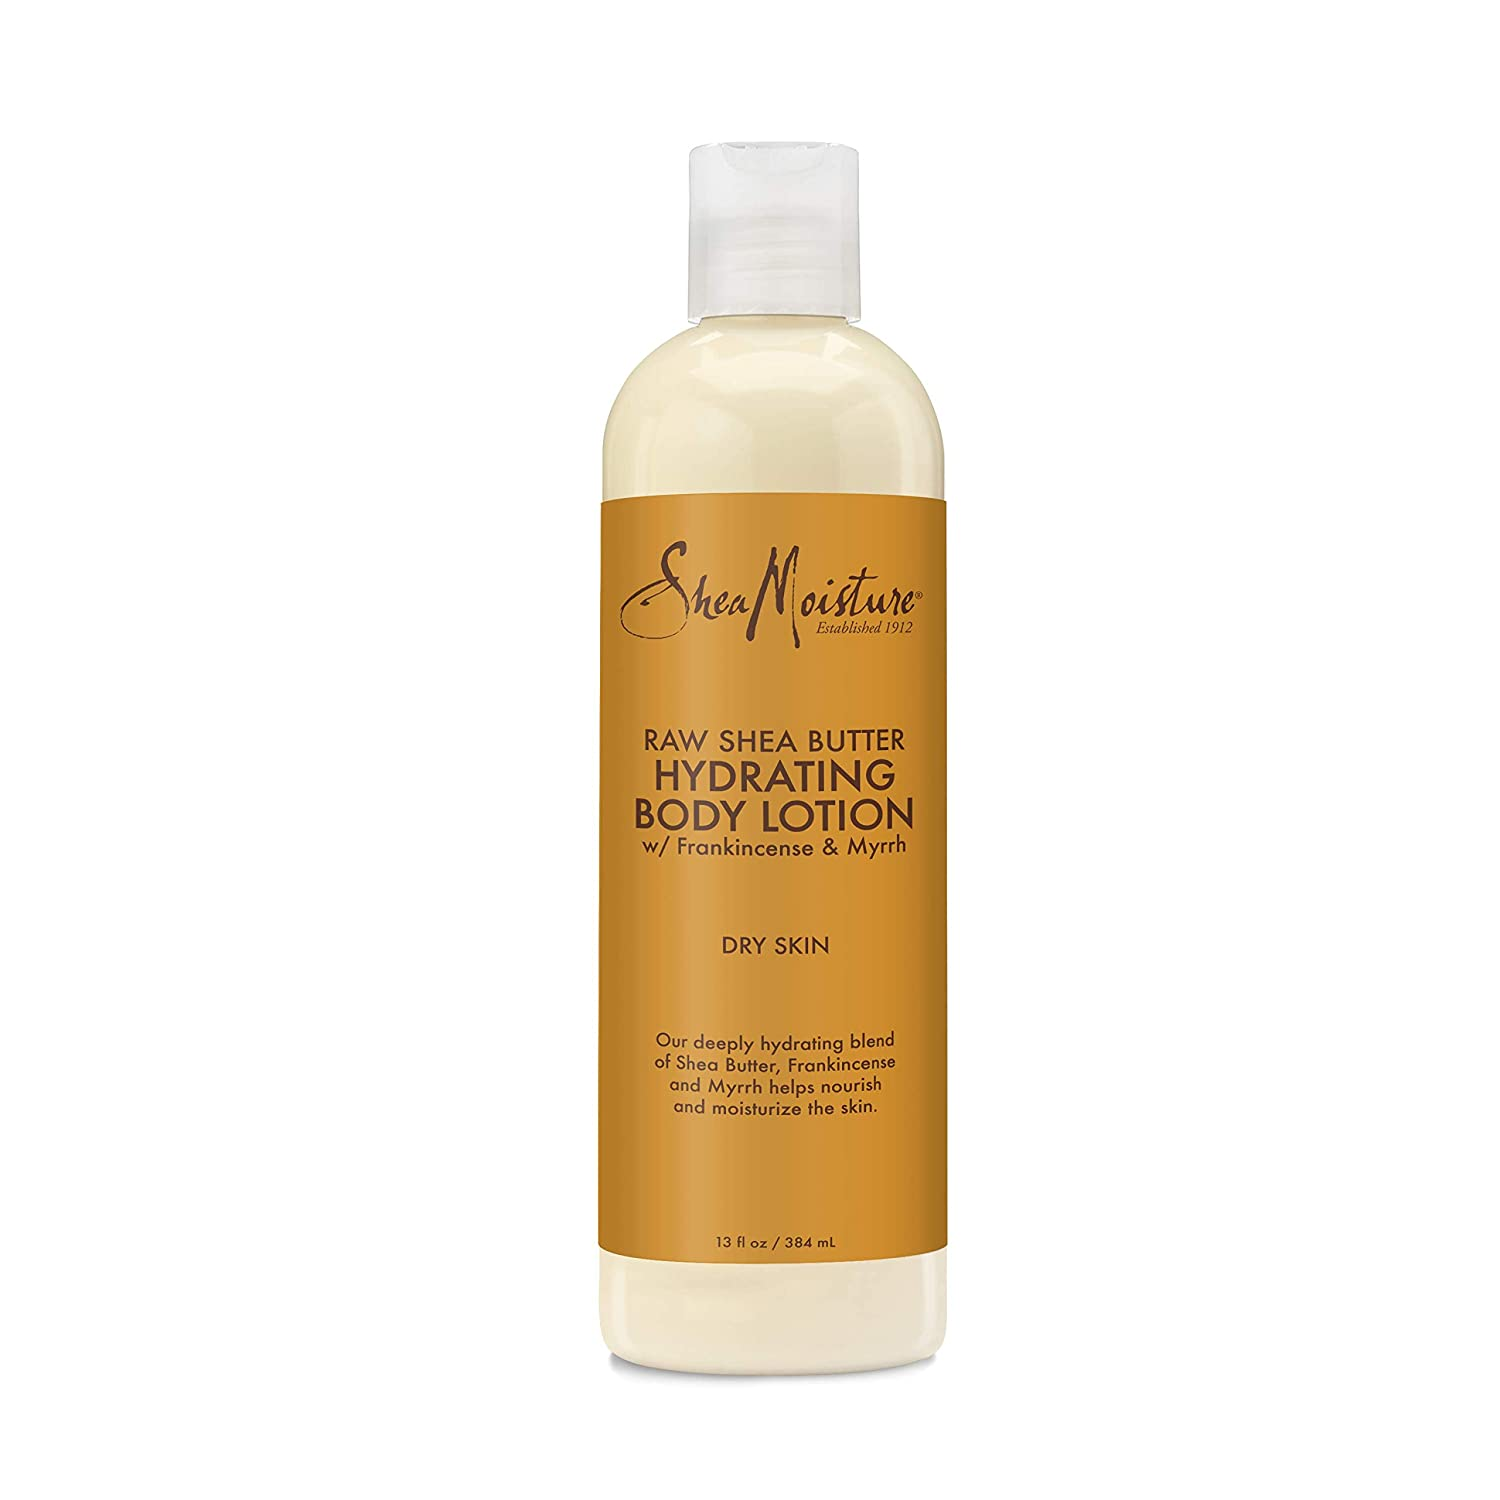 Sheamoisture Raw Shea Butter Hydrating Body Lotion 13 Oz 2 Pack